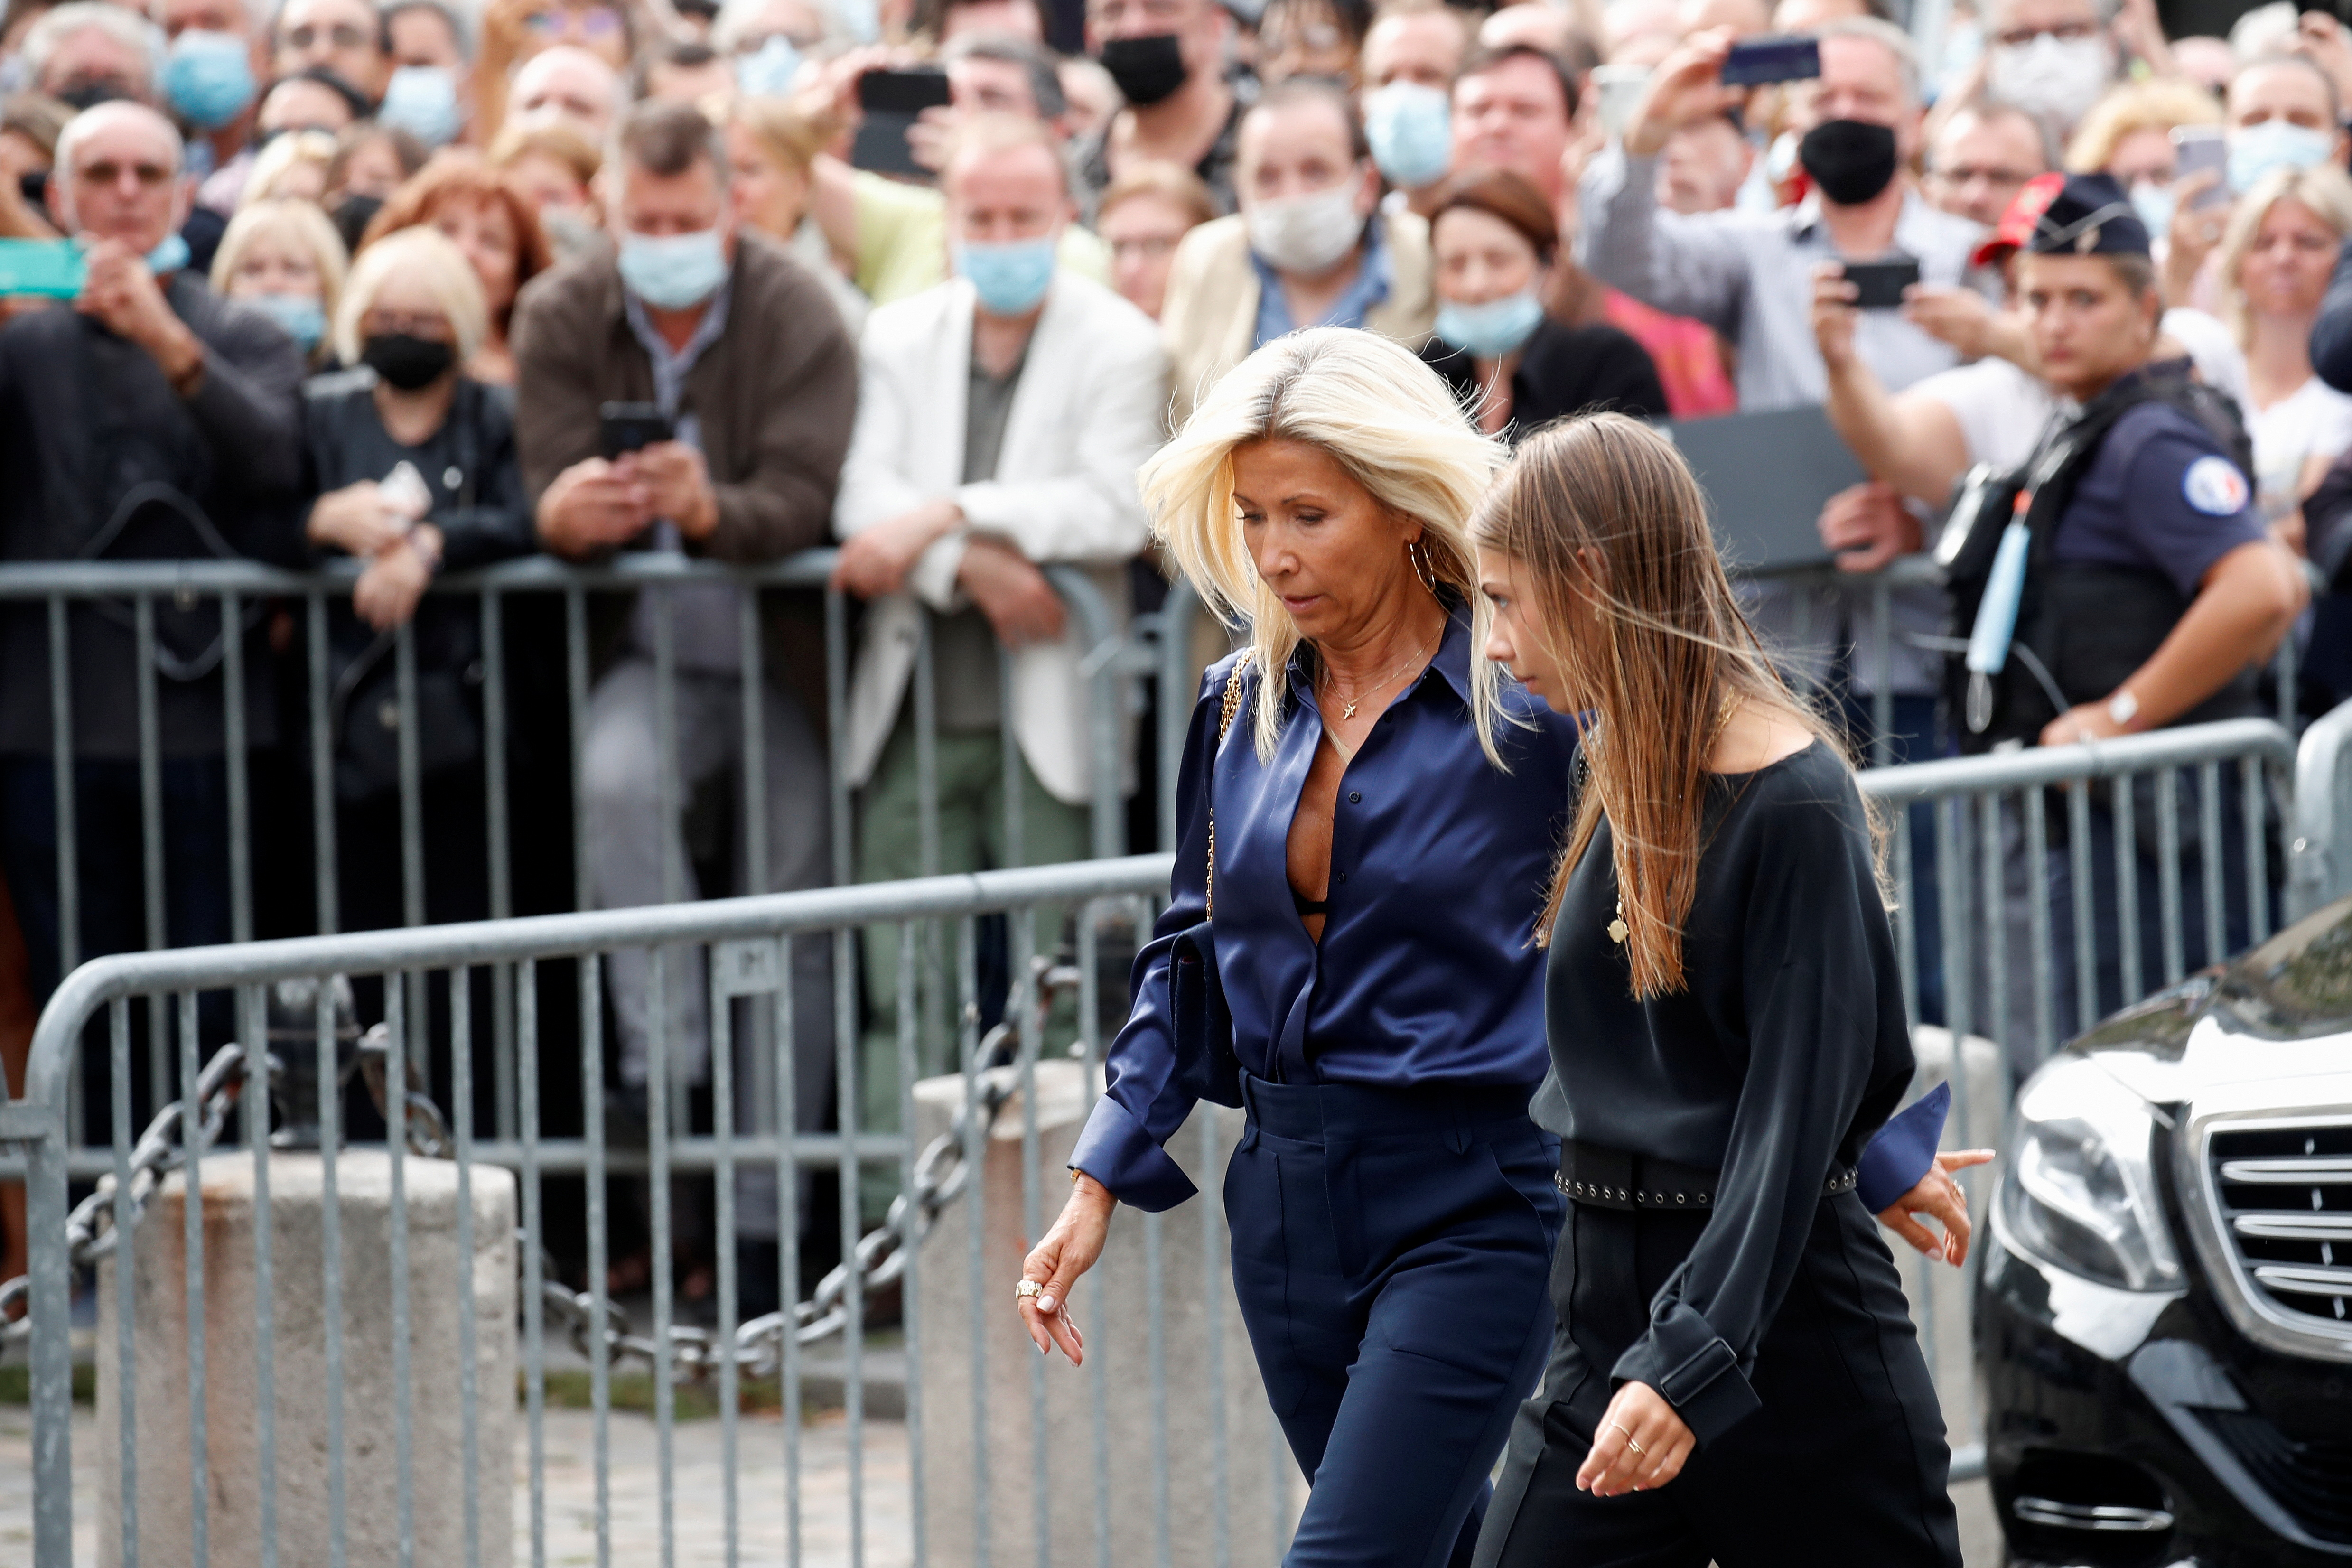 Stella Belmondo, daughter of Jean-Paul Belmondo, and her mother Natty Tardivel arrive to attend the funeral ceremony for late French actor Jean-Paul Belmondo at the Saint-Germain-des-Pres church in Paris, France, September 10, 2021. REUTERS/Gonzalo Fuentes